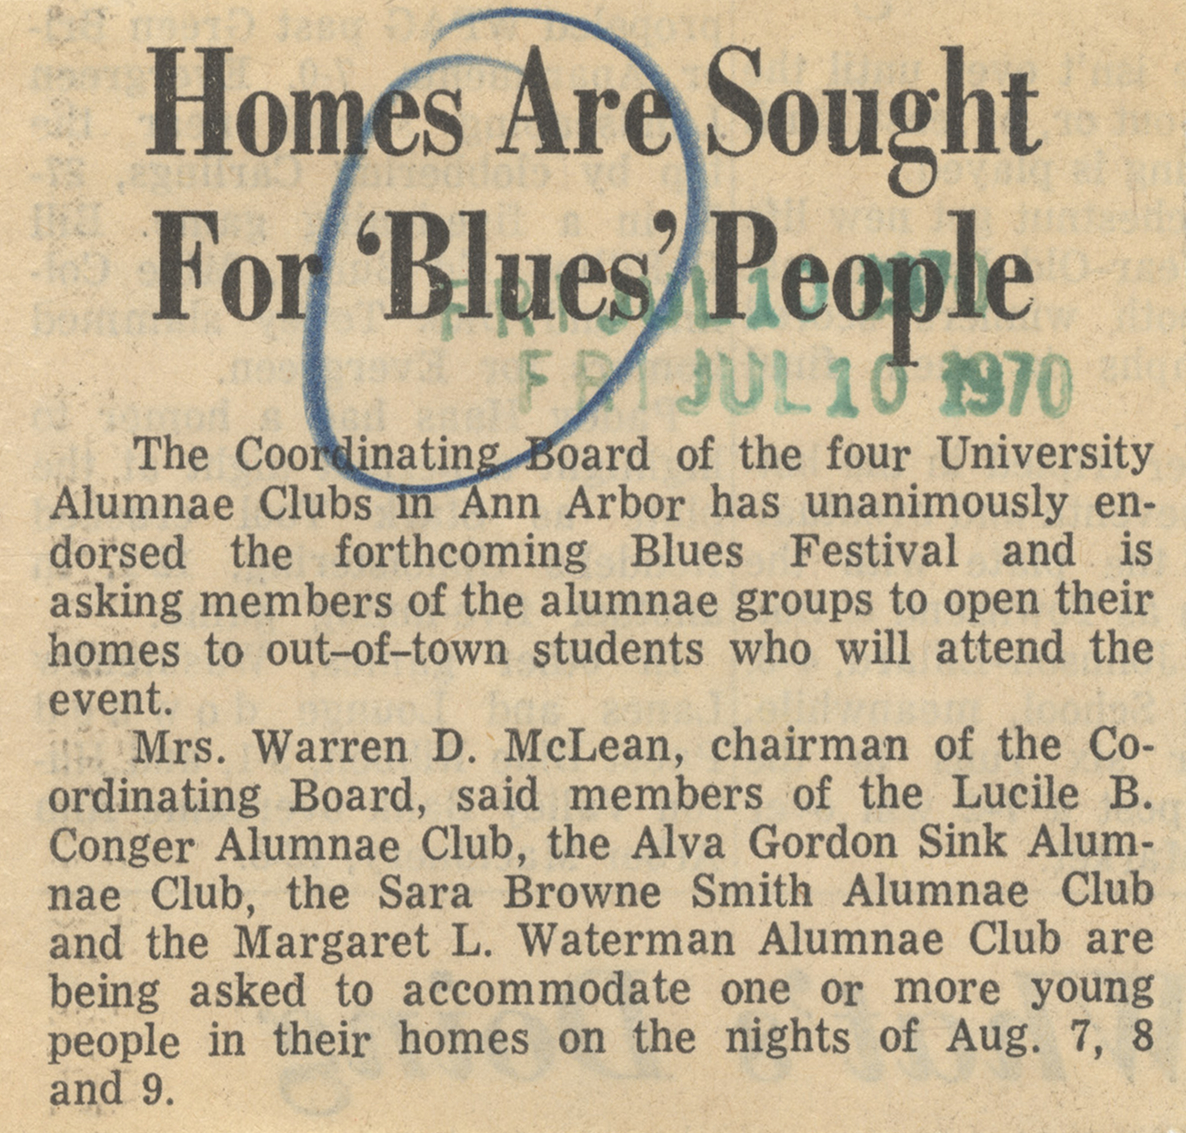 Homes Are Sought For 'Blues' People image